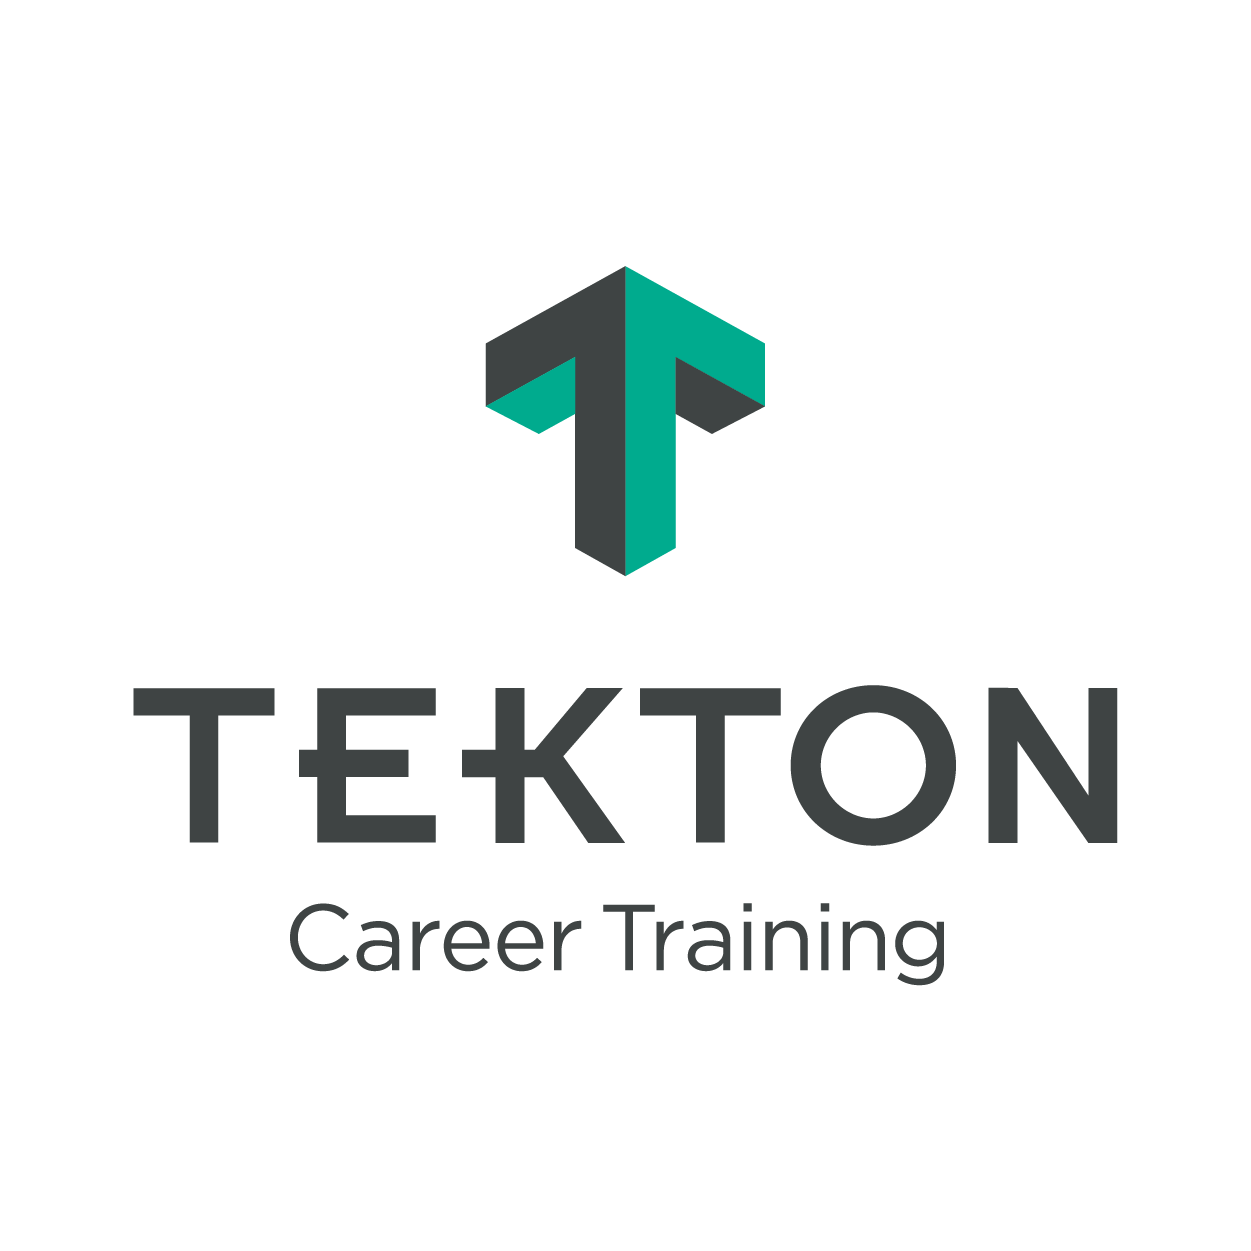 Copy of Tekton Career Training